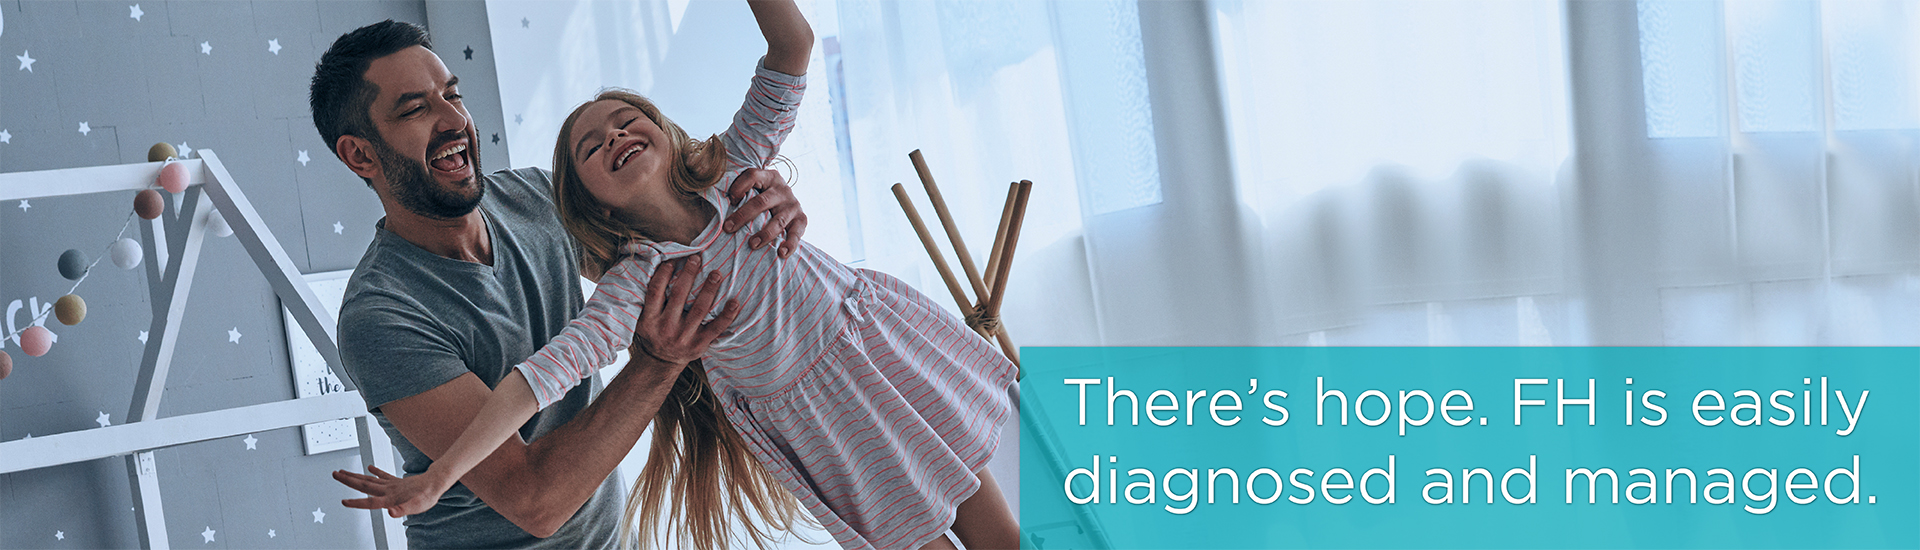 FH is easily diagnosed and managed.